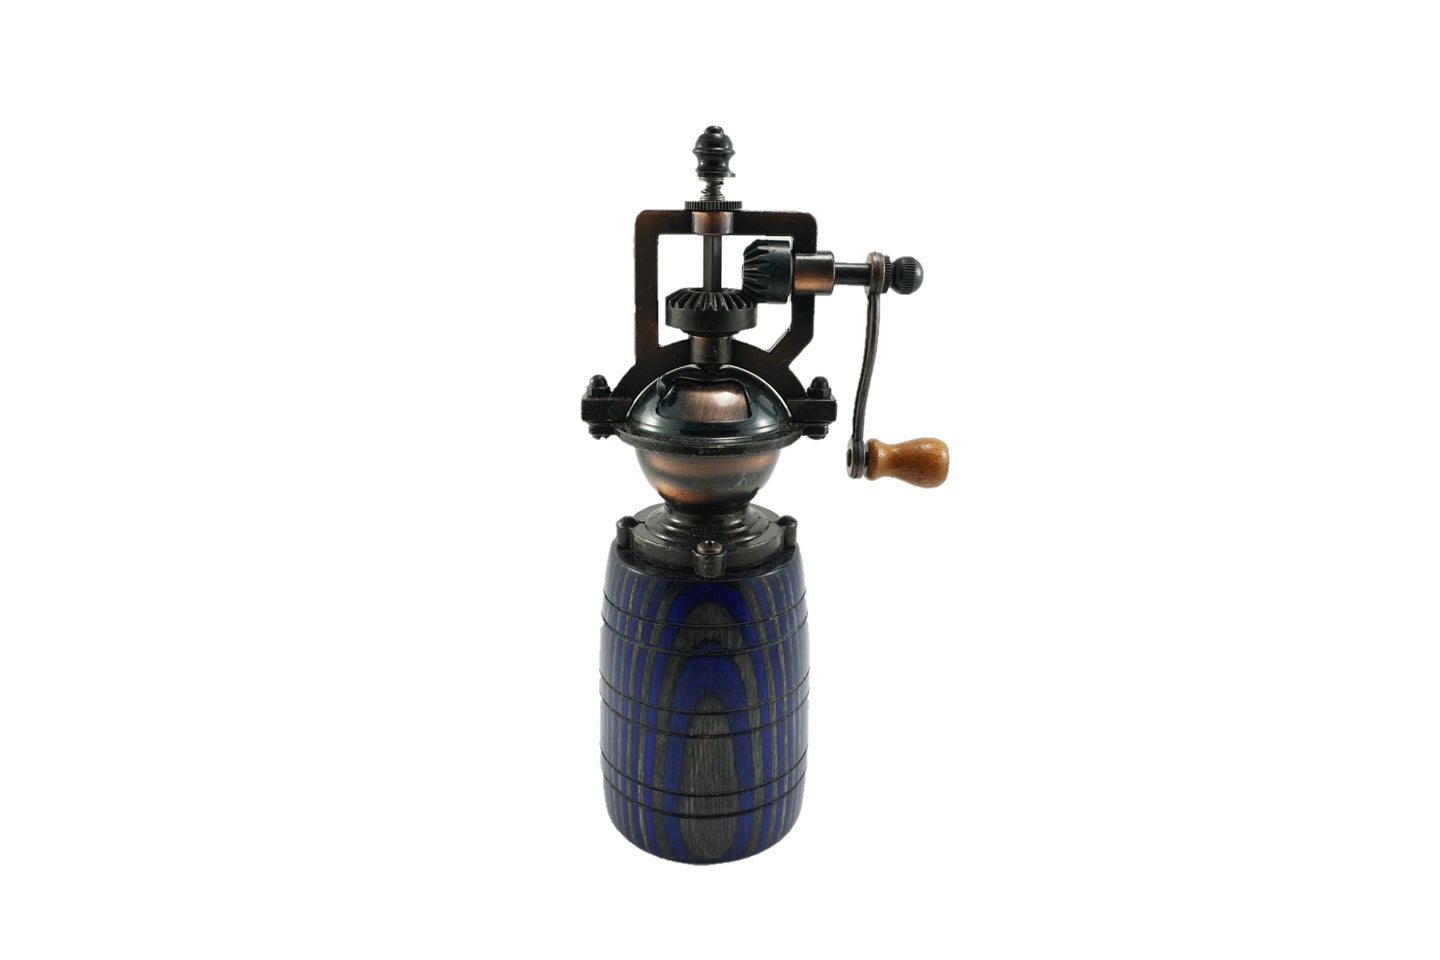 Colored Wood Barrel-shaped Peppermill - Blue, Gray